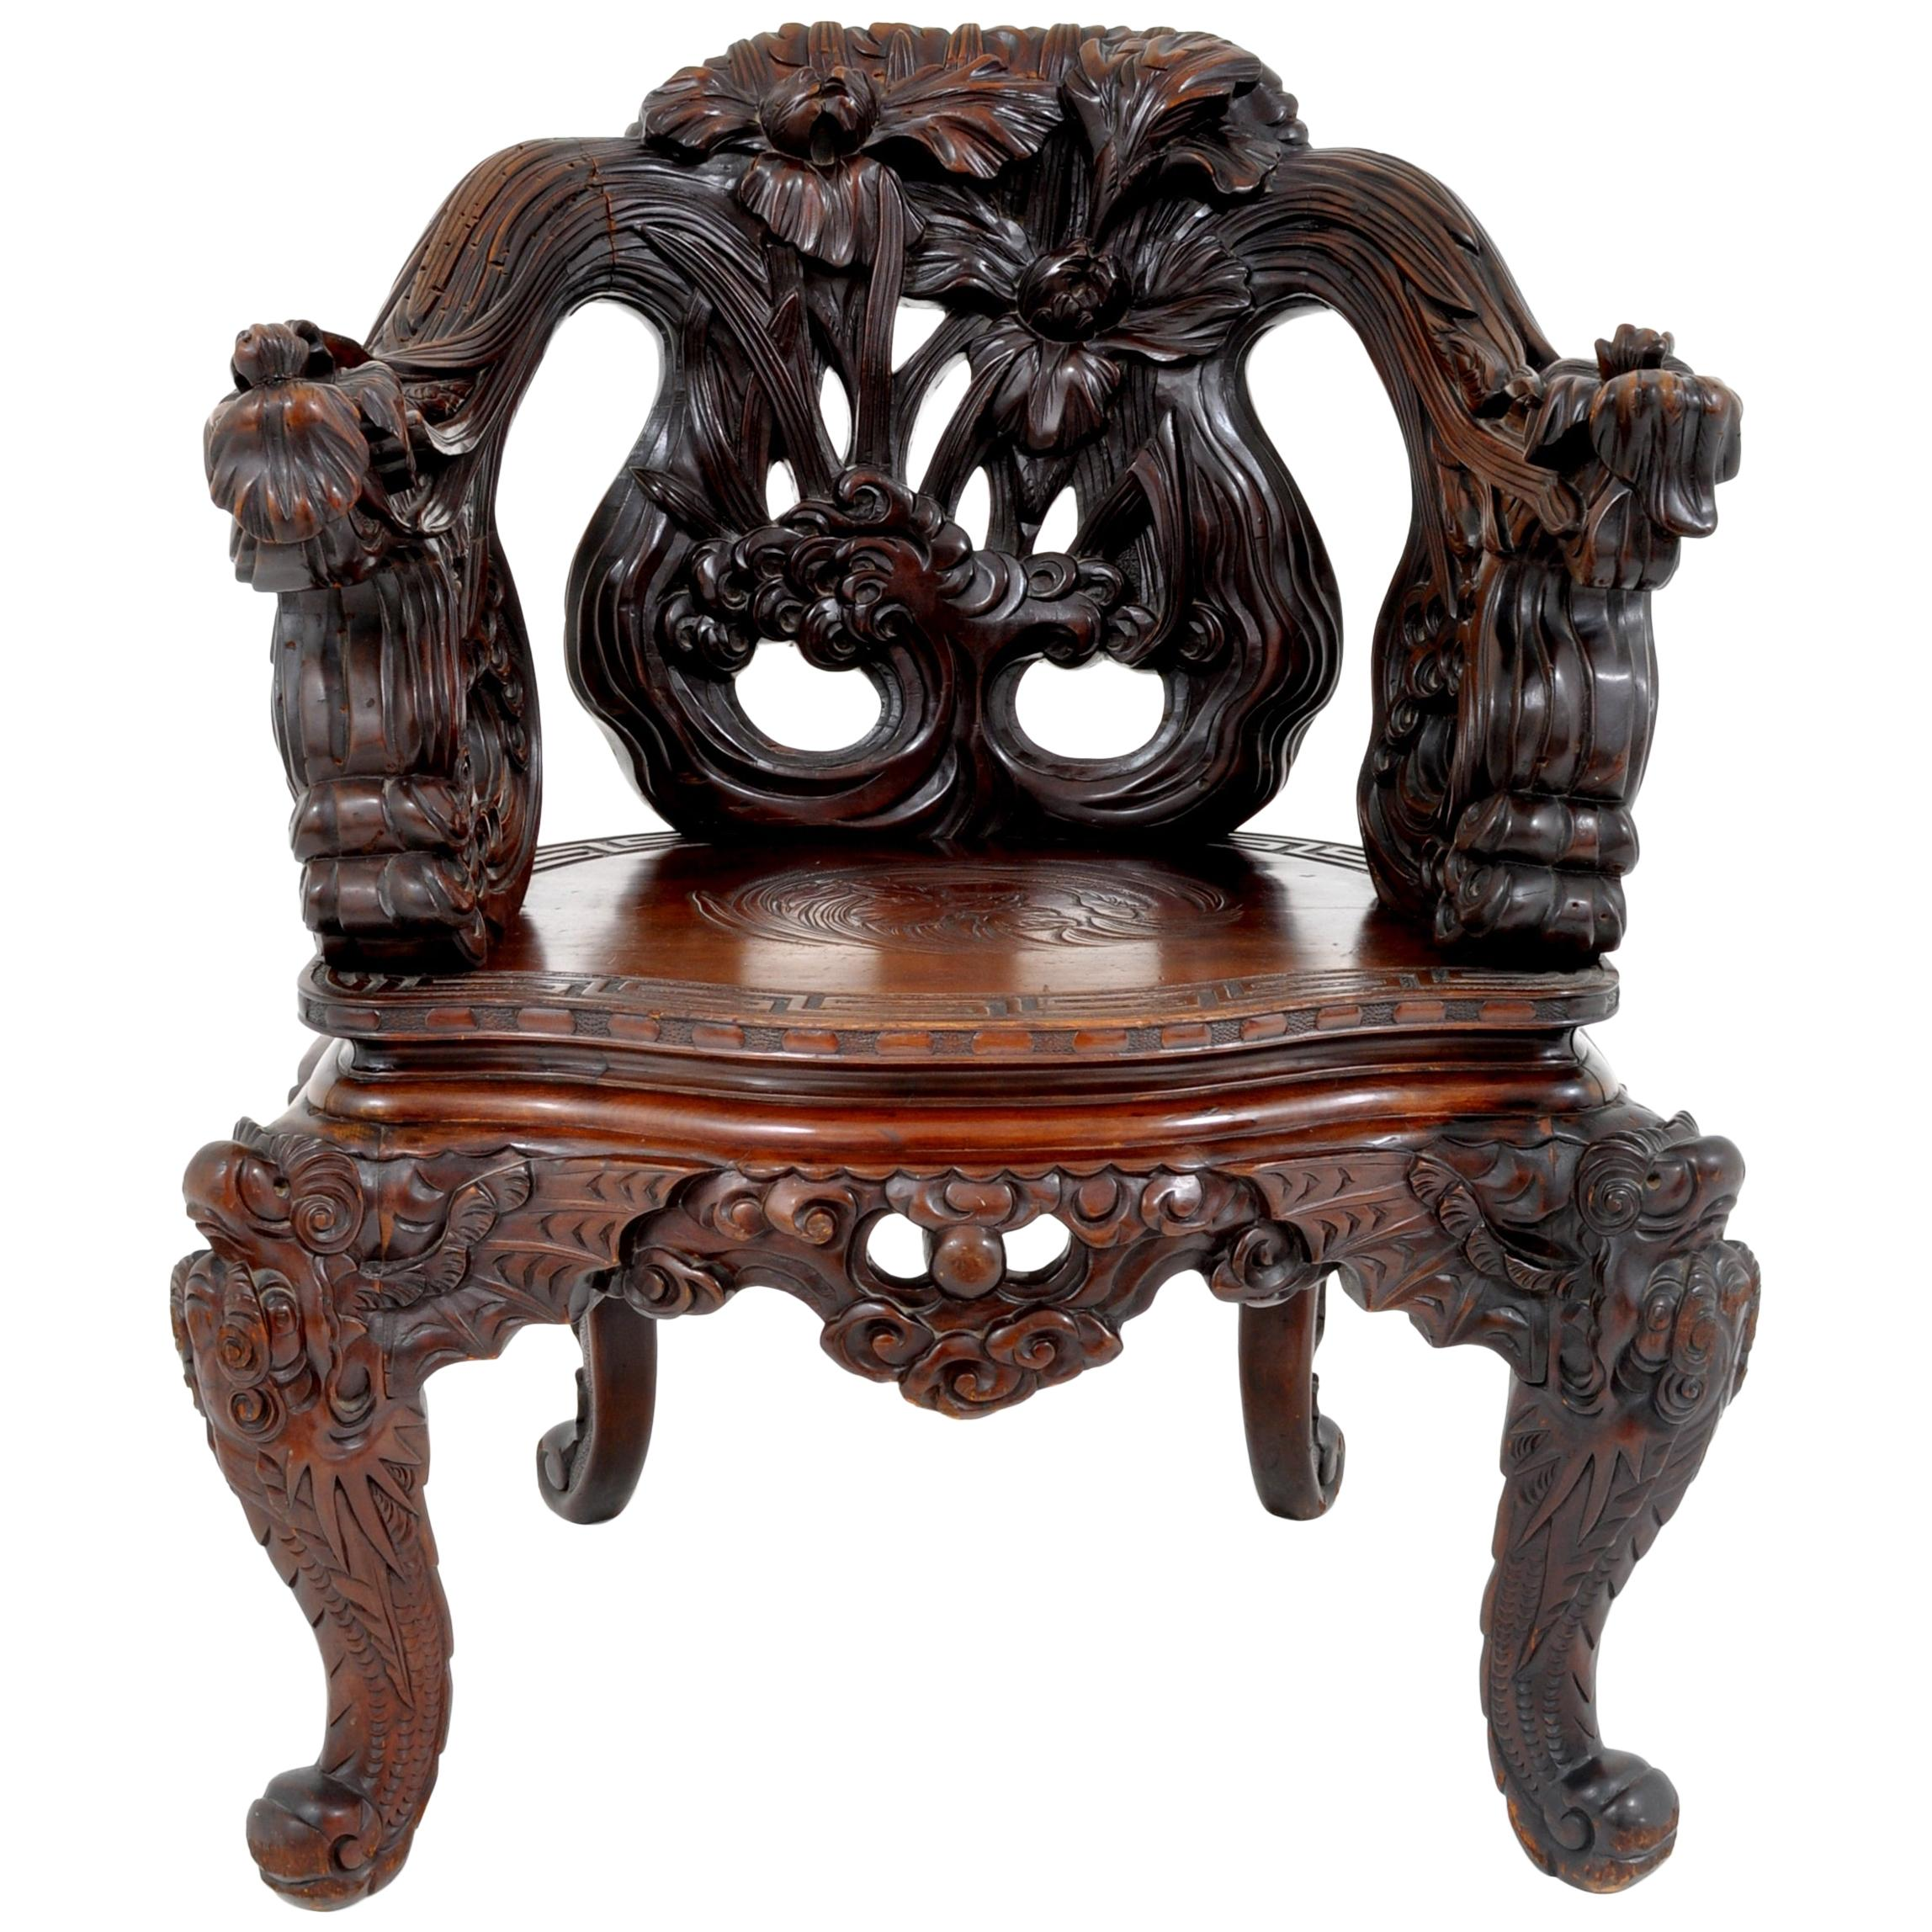 Antique Chinese Qing Dynasty Carved Rosewood Throne Chair, circa 1890